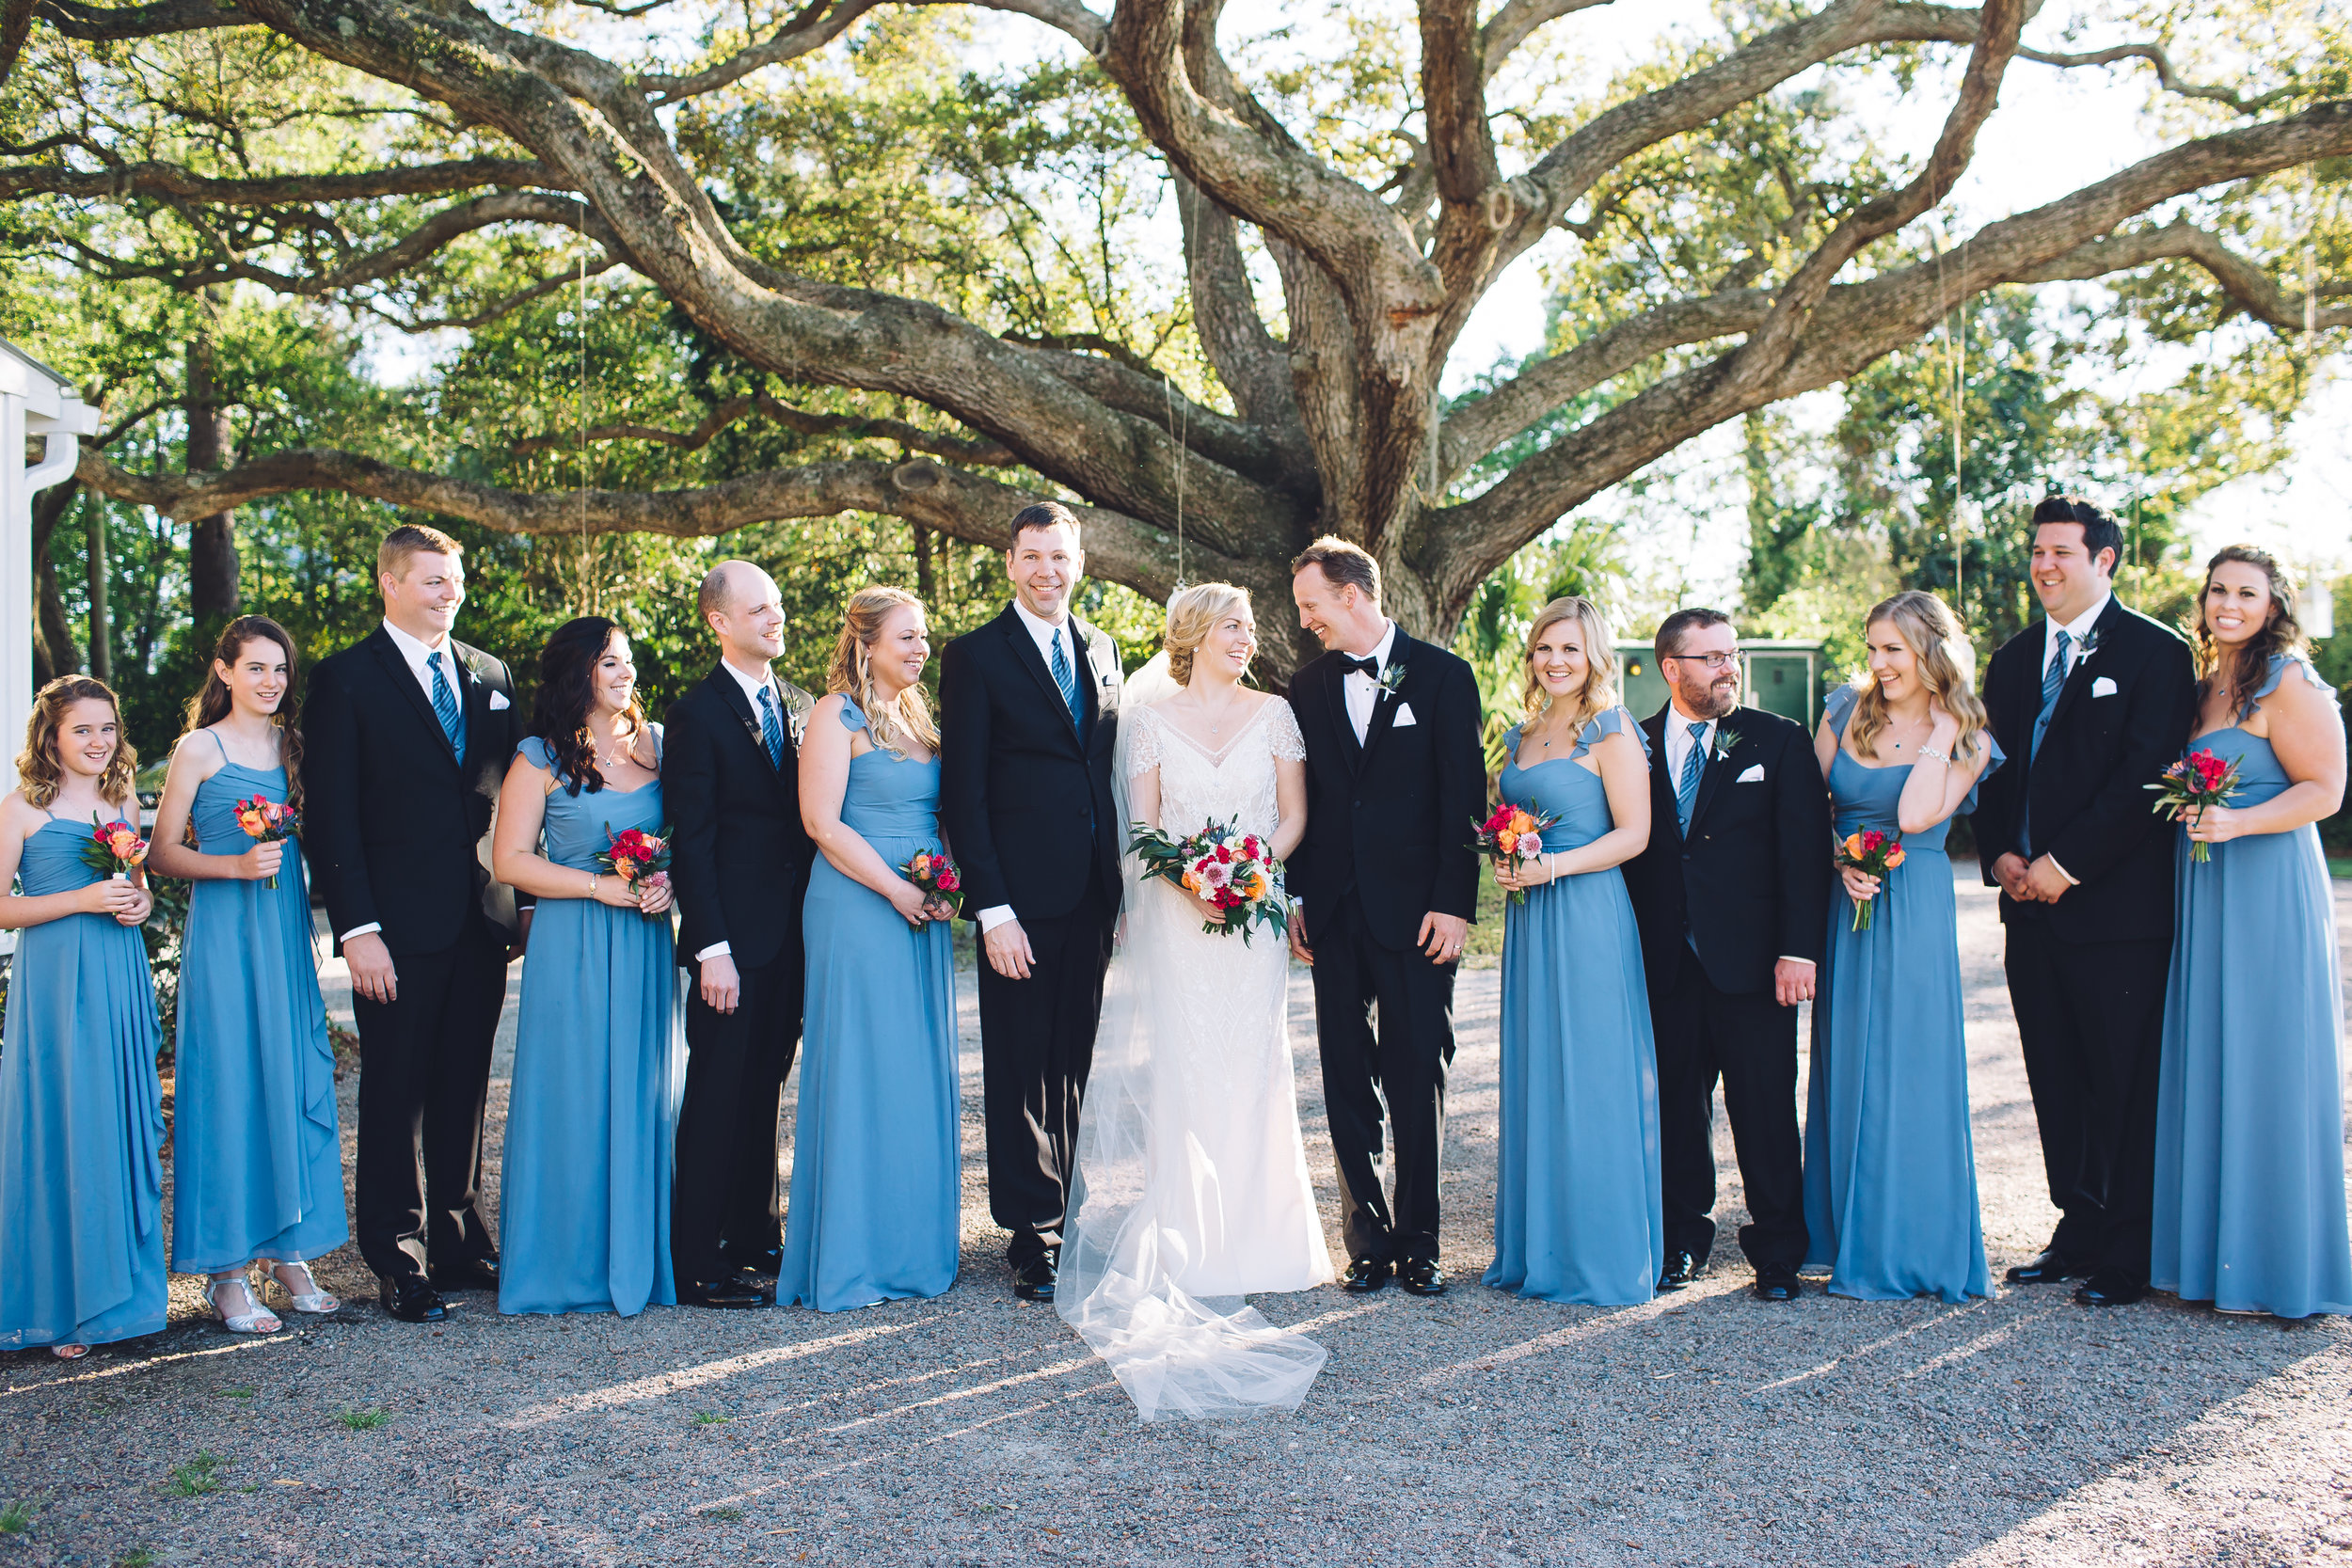 charleston wedding, charleston wedding photographer, charleston photographer, charleston wedding photographers, best charleston wedding photographers, best charleston wedding photographer, husband and wife photography, the island house wedding, destination wedding photographers